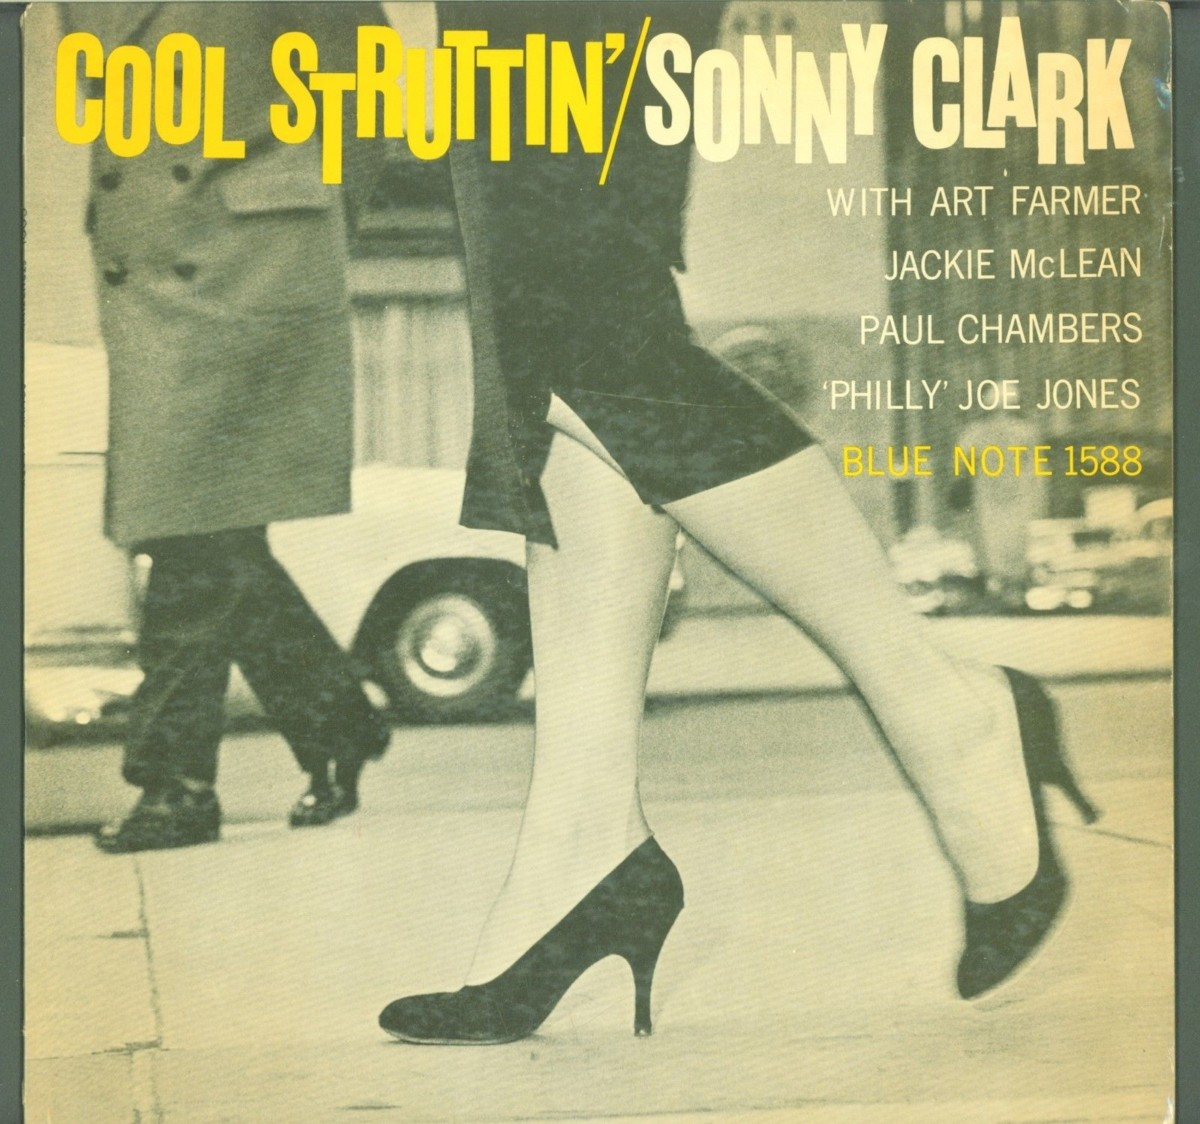 The Jazz Record Center had an auction last week and I was keeping tabs on a  few of their records, including: Sonny Clark, Cool Struttin', Blue Note  1588.